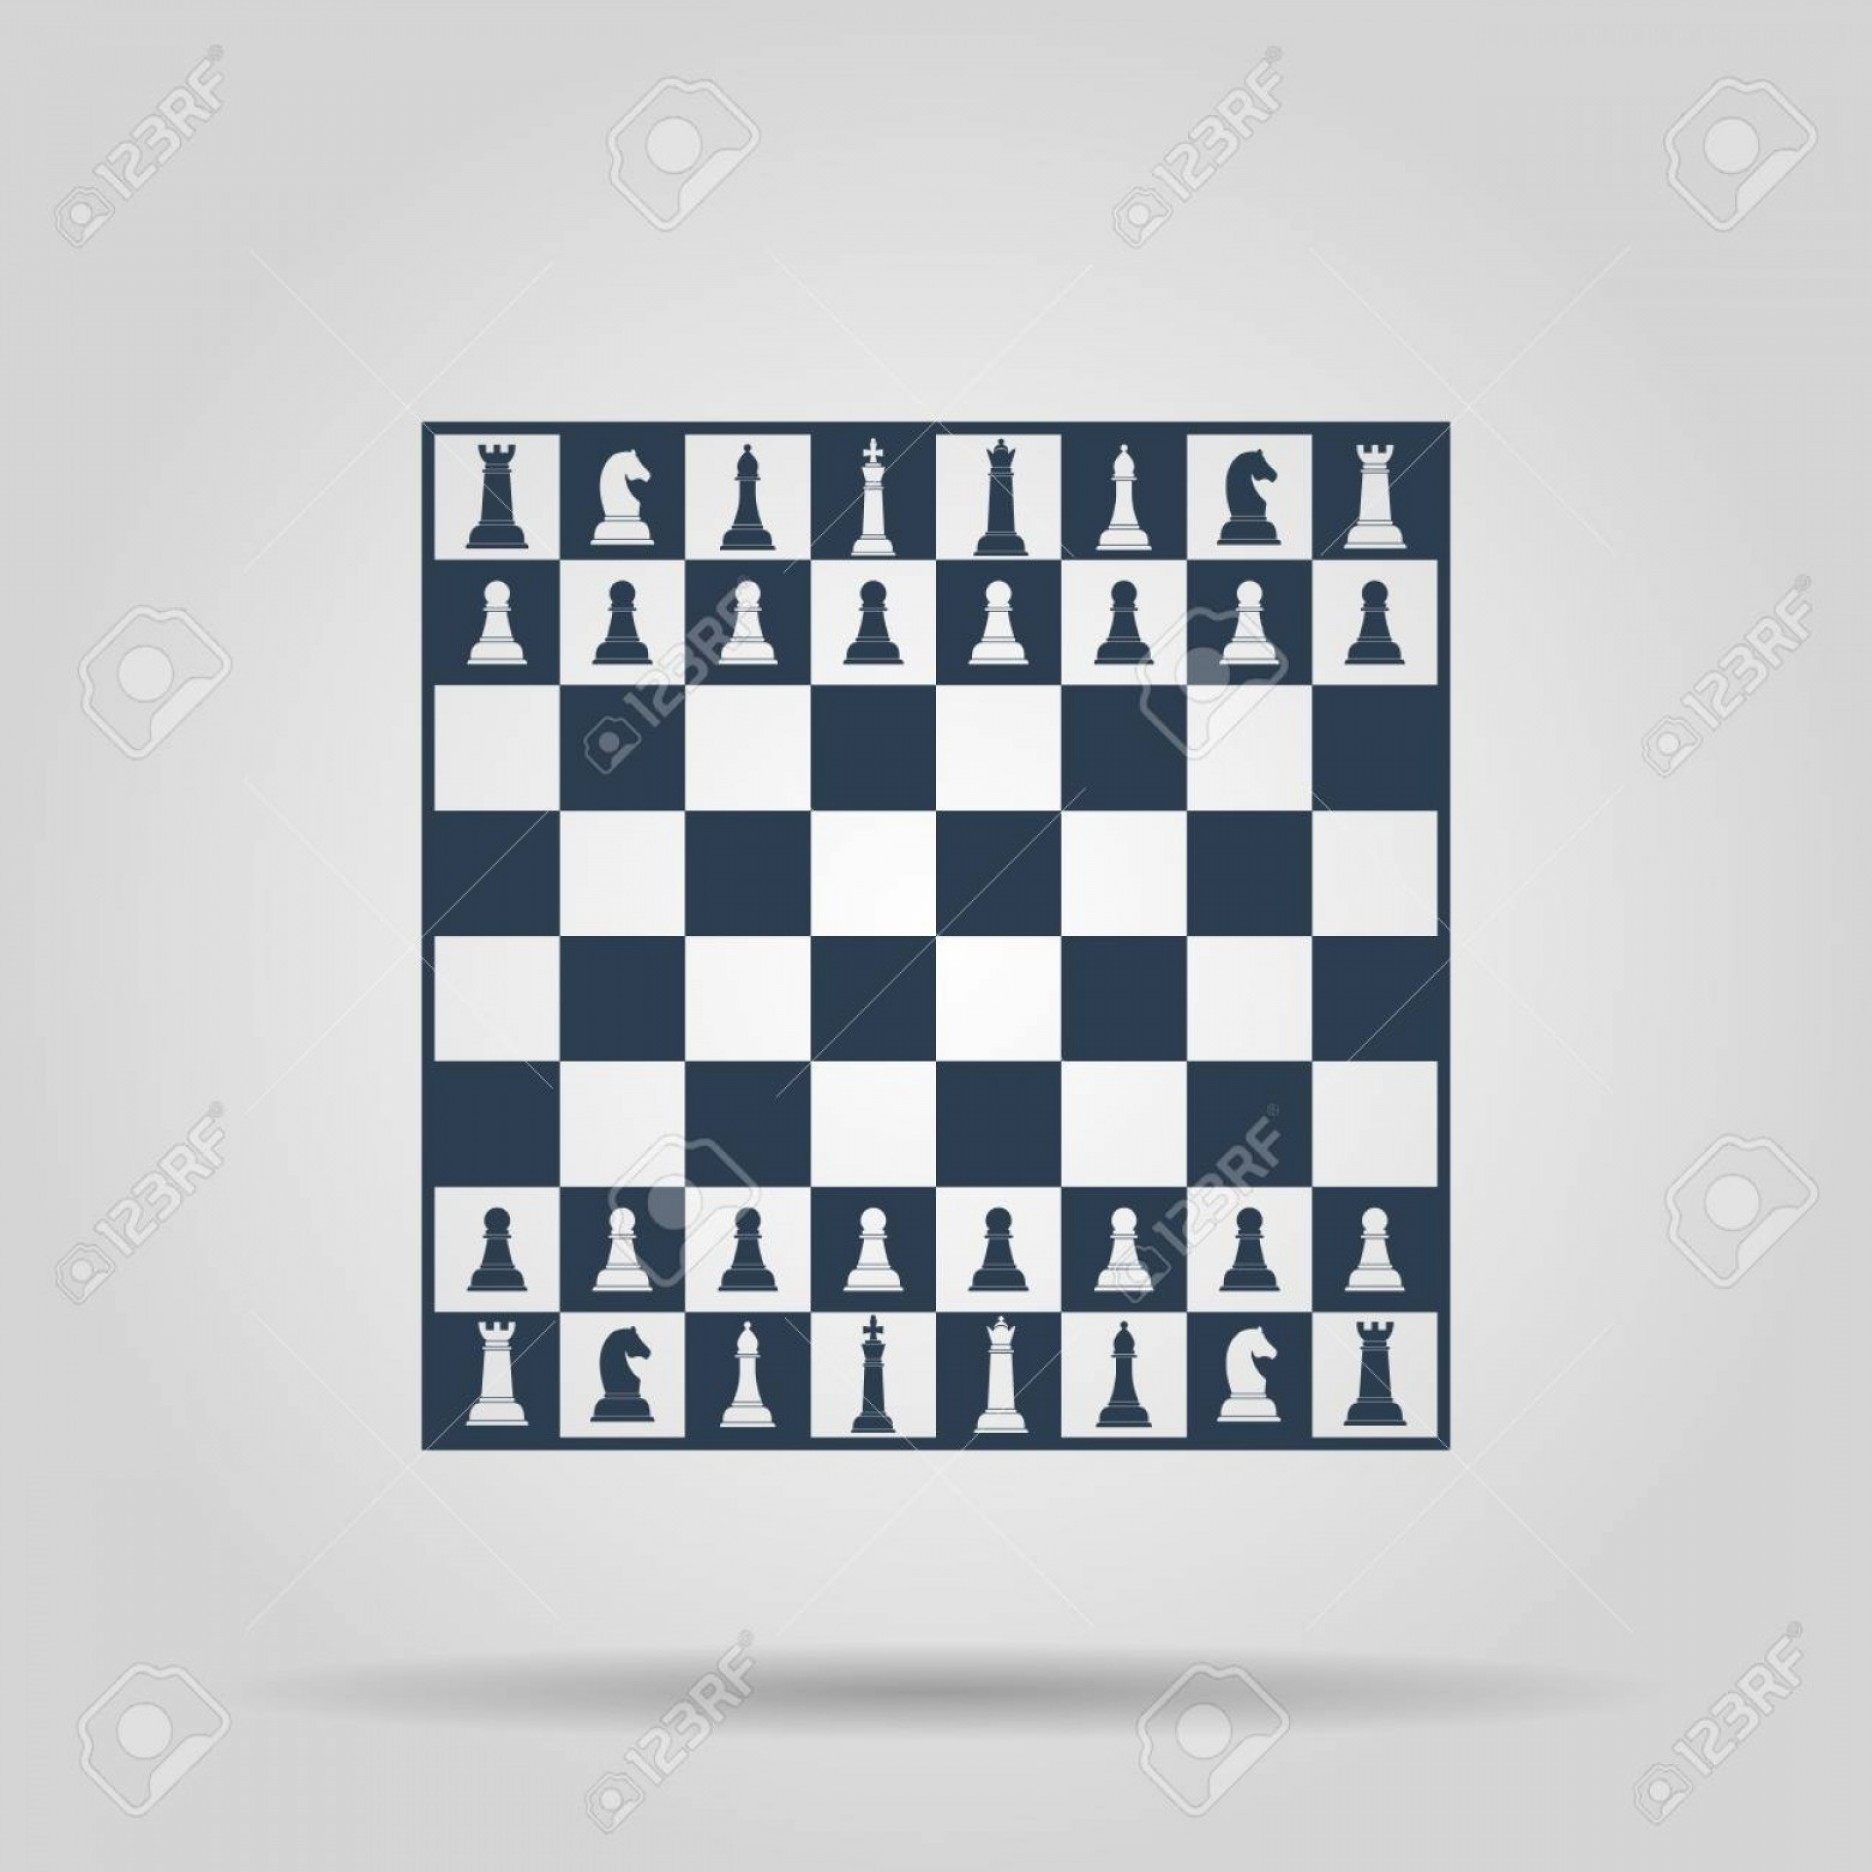 Vector Chess Board: Photostock Vector Chess Board Vector Concept Illustration For Design